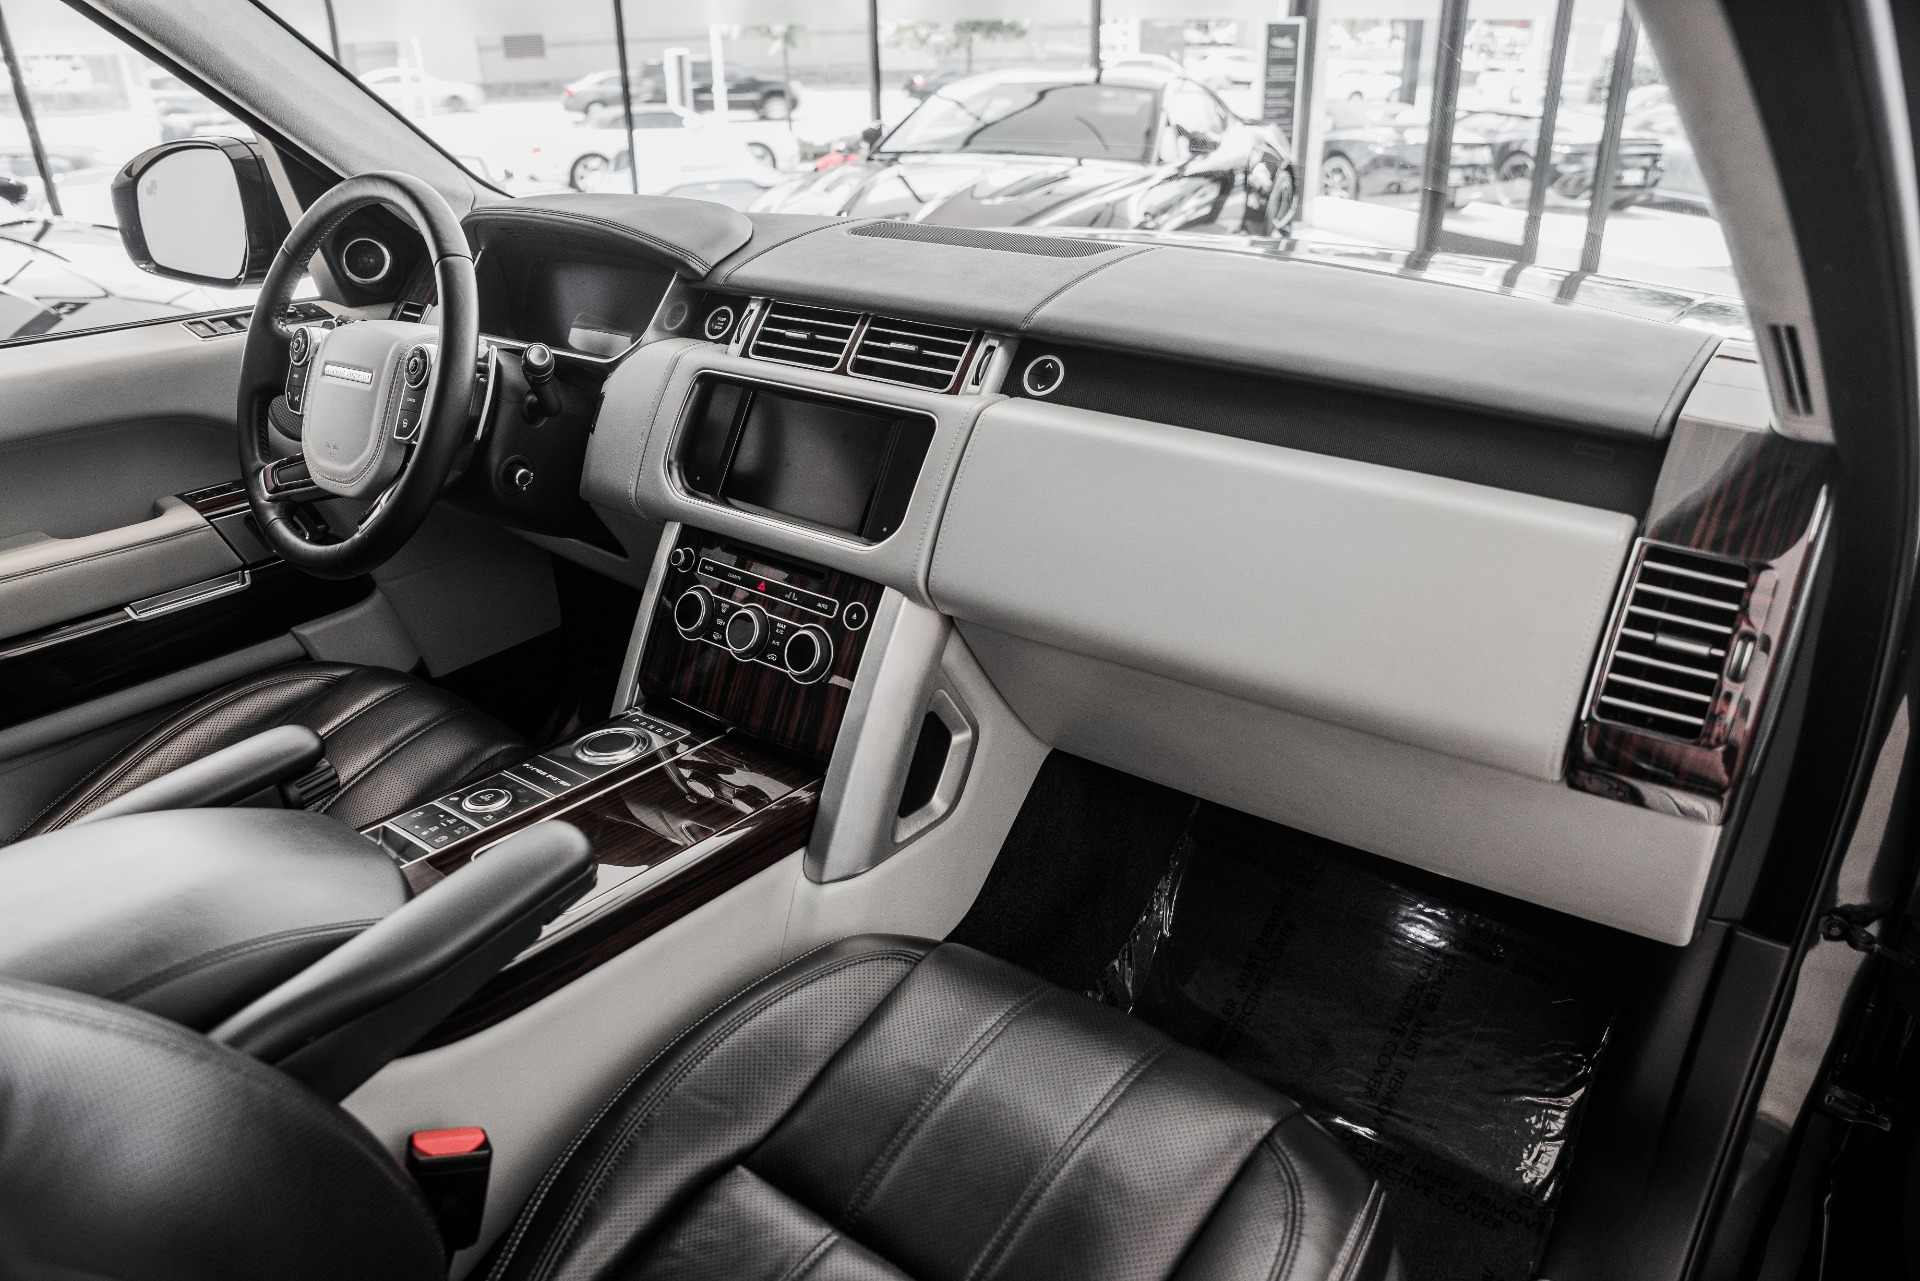 Used-2014-Land-Rover-Range-Rover-Autobiography